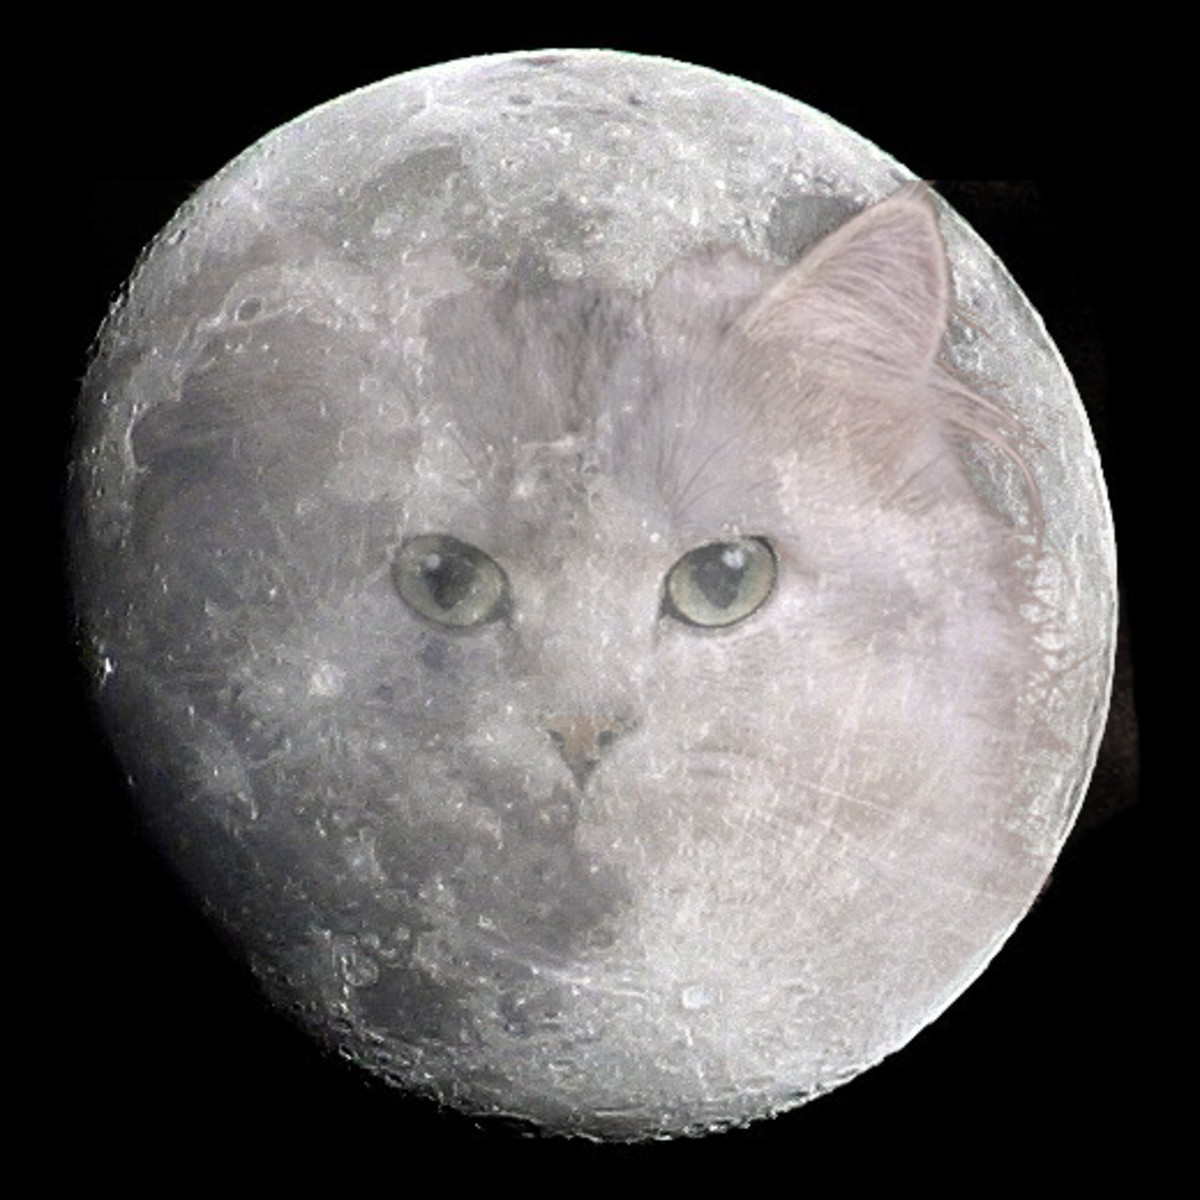 Moon Cat is watching you!